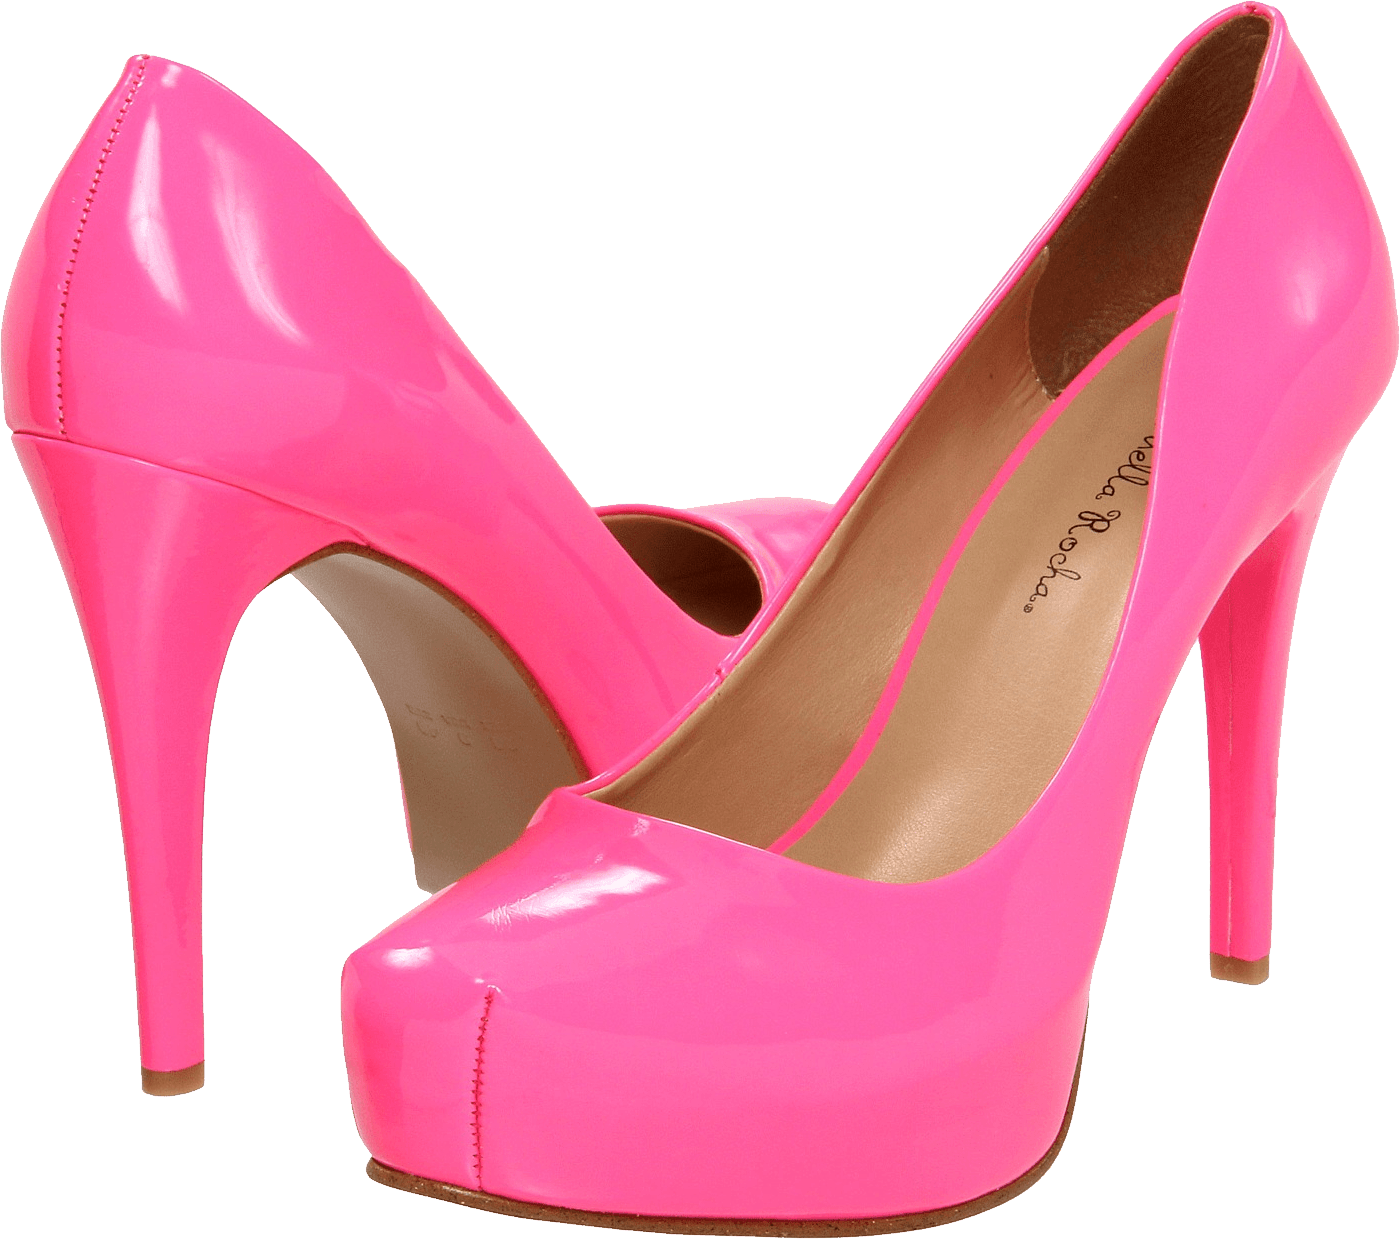 Female Shoes Transparent PNG Image